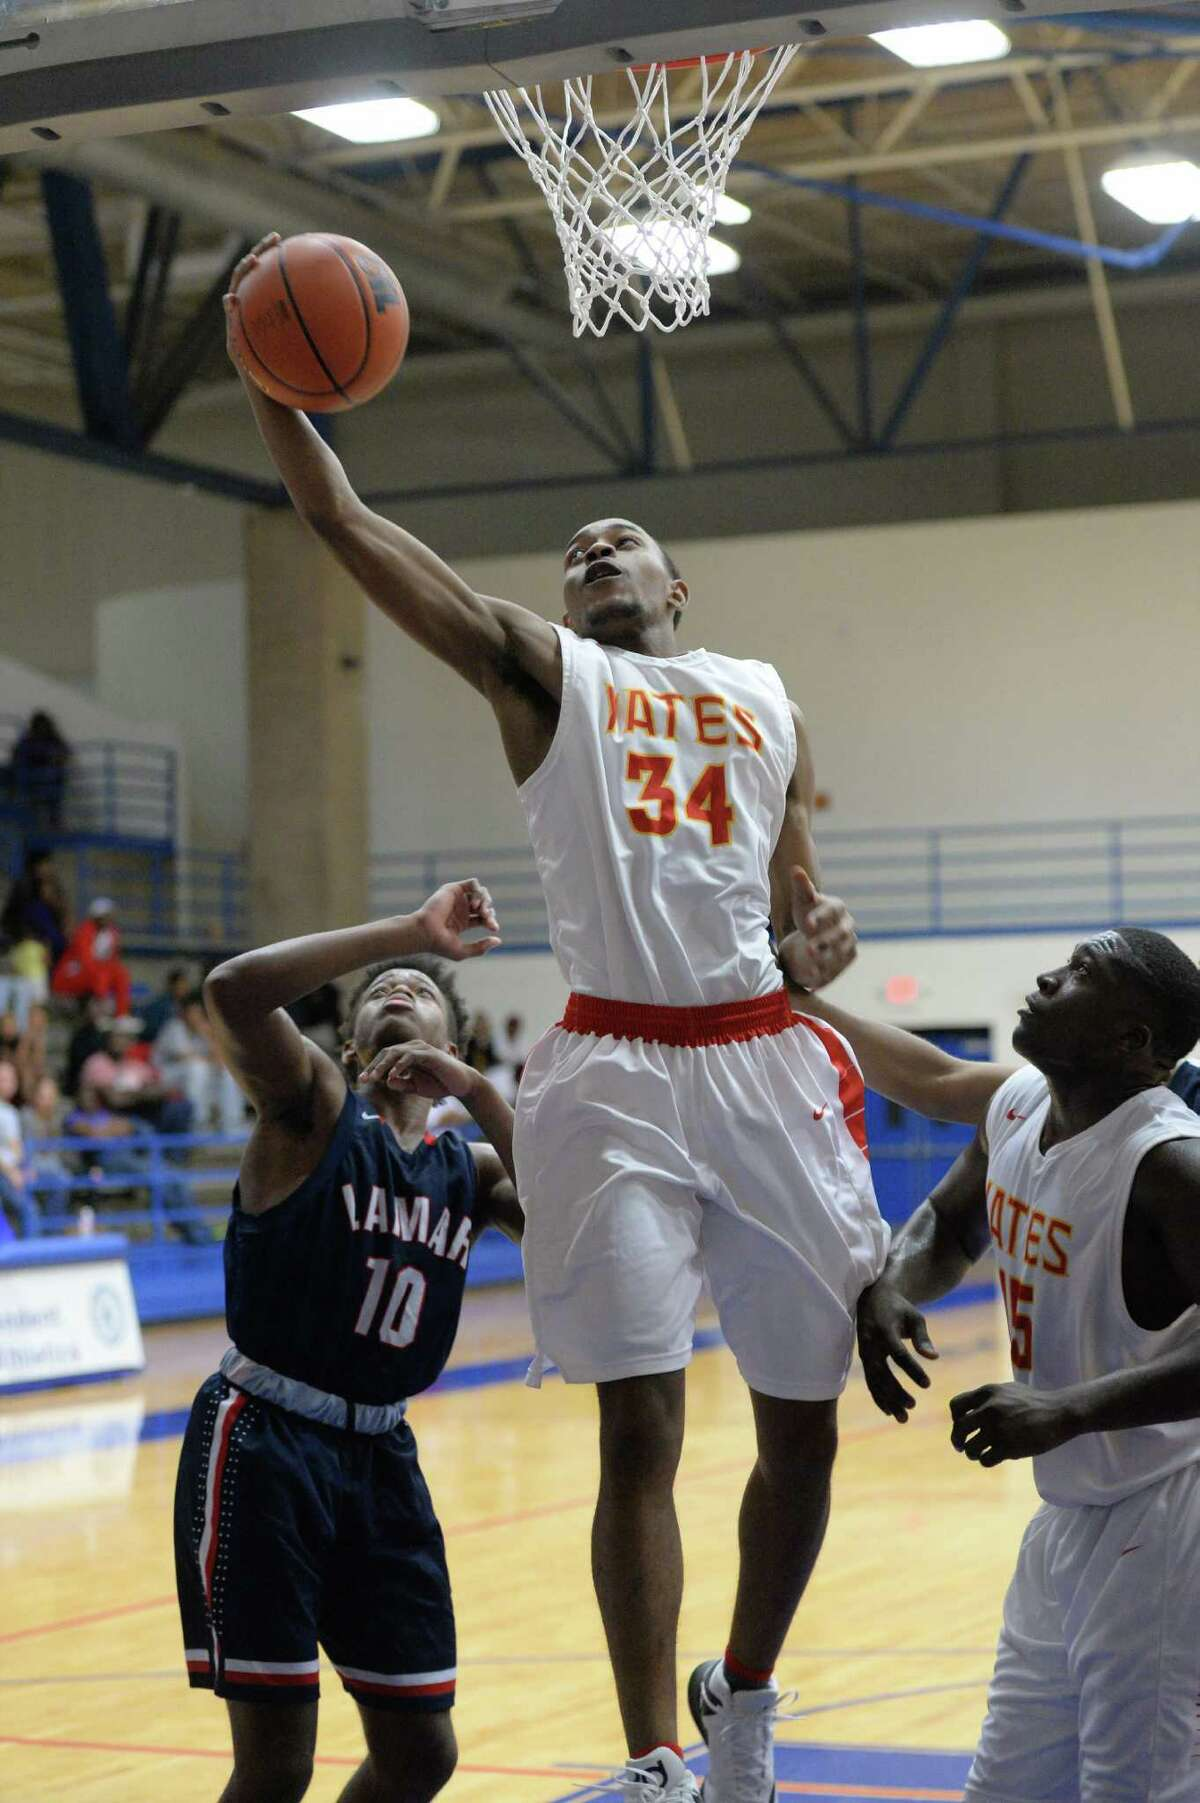 Darius Arvie (34) grabs a rebound during the second half of a boys basketball game between the Lamar Texans and the Yates Lions at the Houston ISD Tournament on Saturday December 17, 2016 at The Pavilion, Houston, TX.